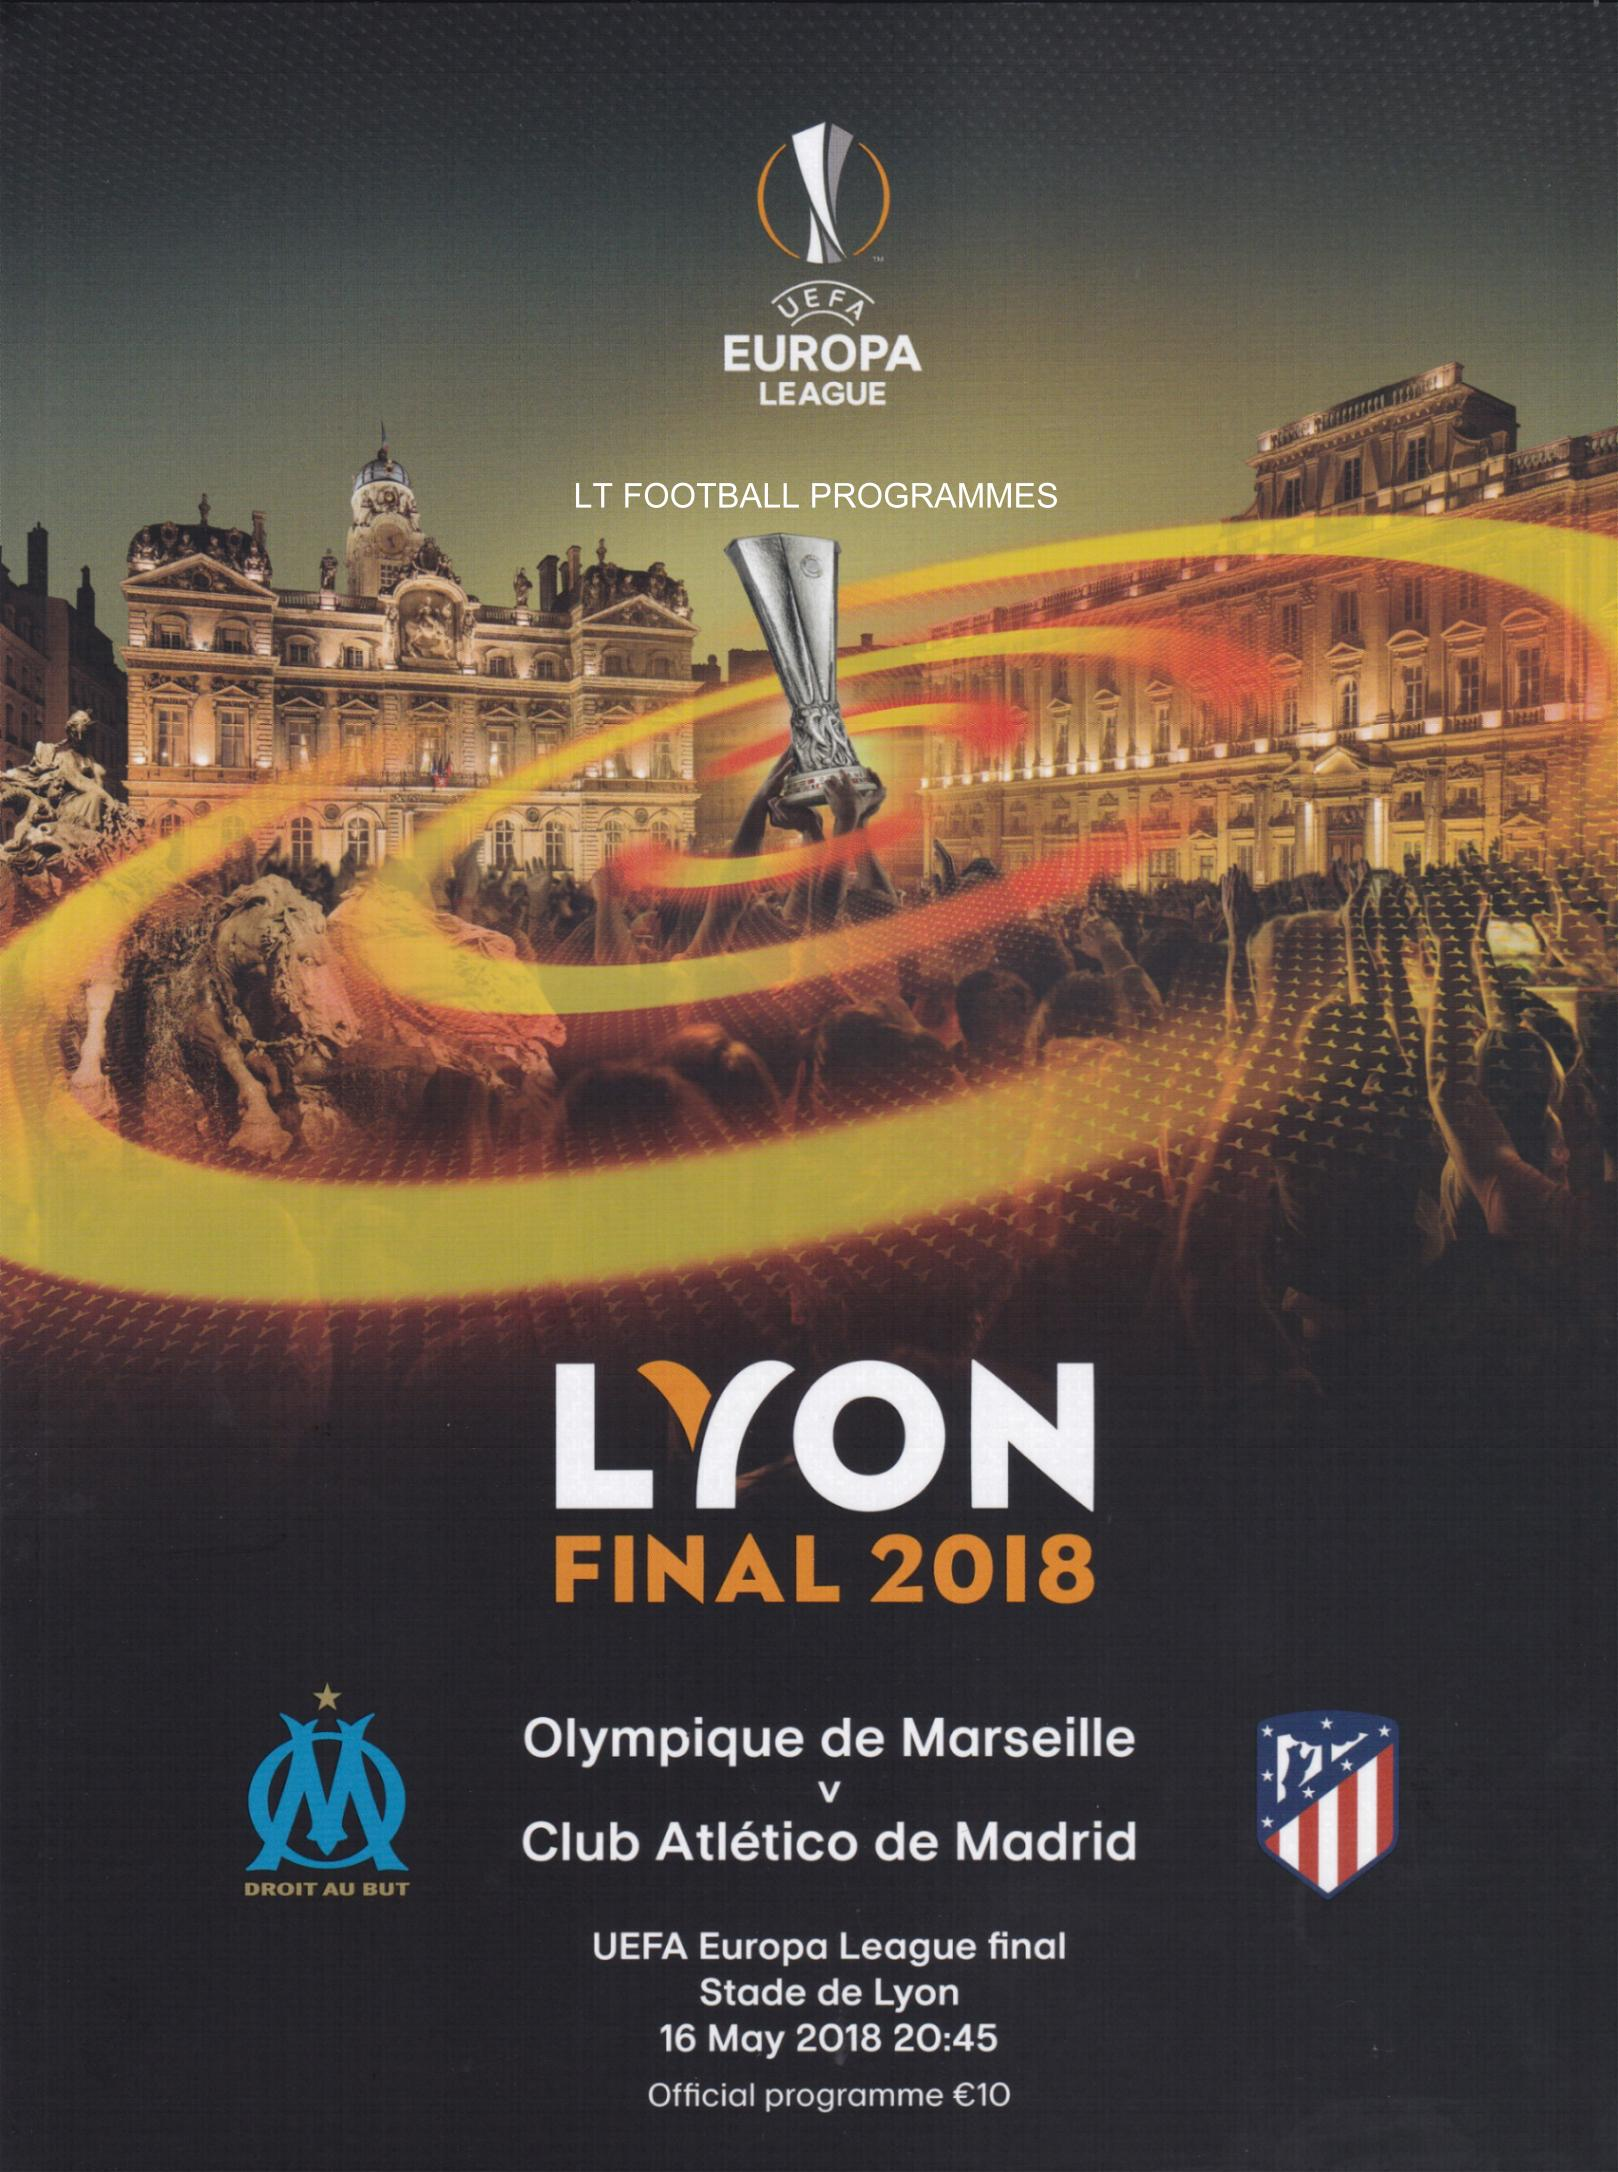 2018 EUROPA LEAGUE FINAL - ATLETICO MADRID v MARSEILLE POST FREE